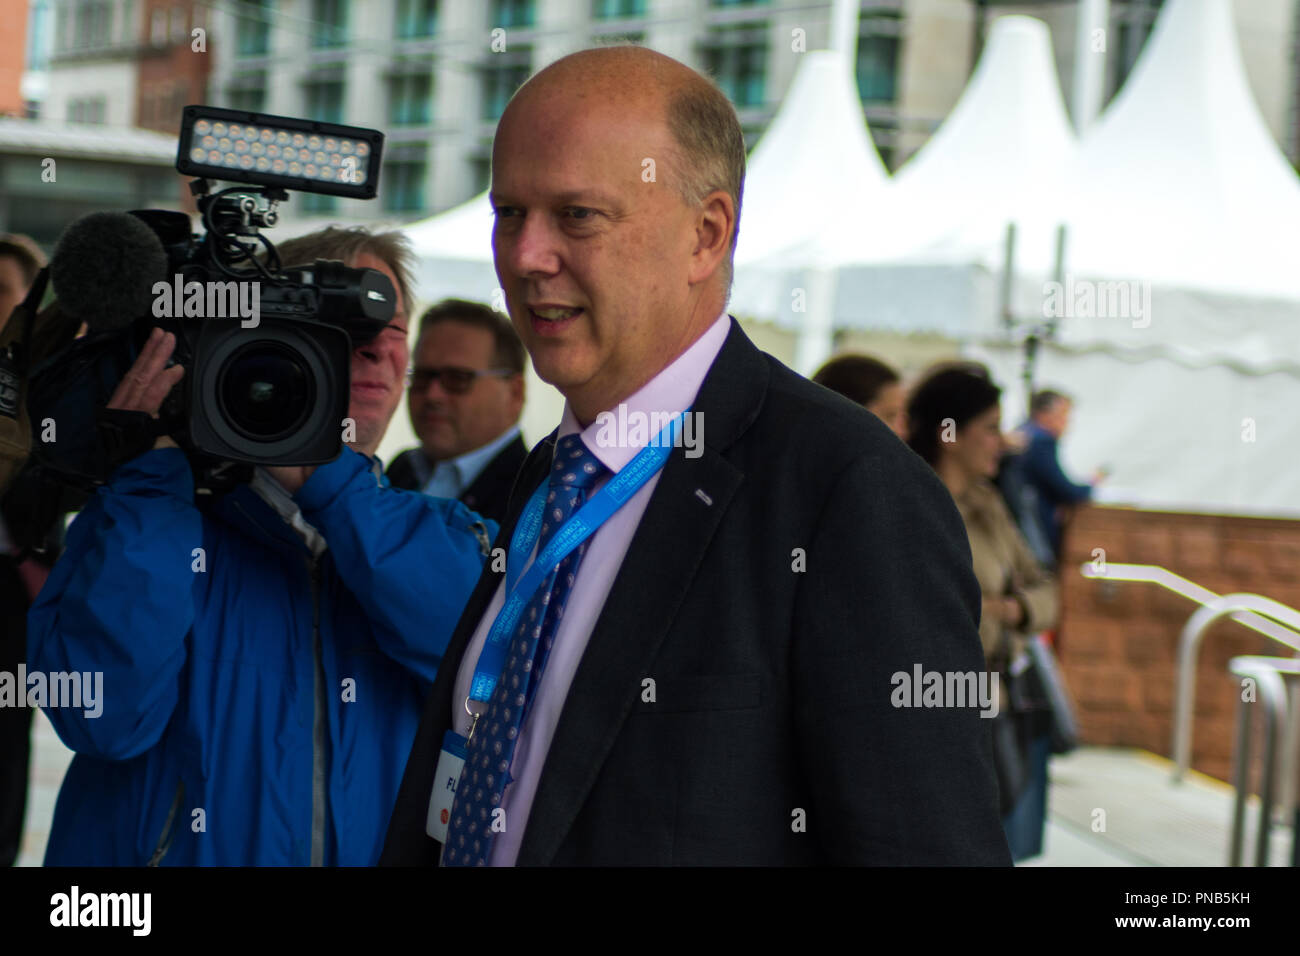 2 October 2017 - Transport Secretary Chris Grayling arrives at Conservative Party Conference in Manchester, UK. - Stock Image